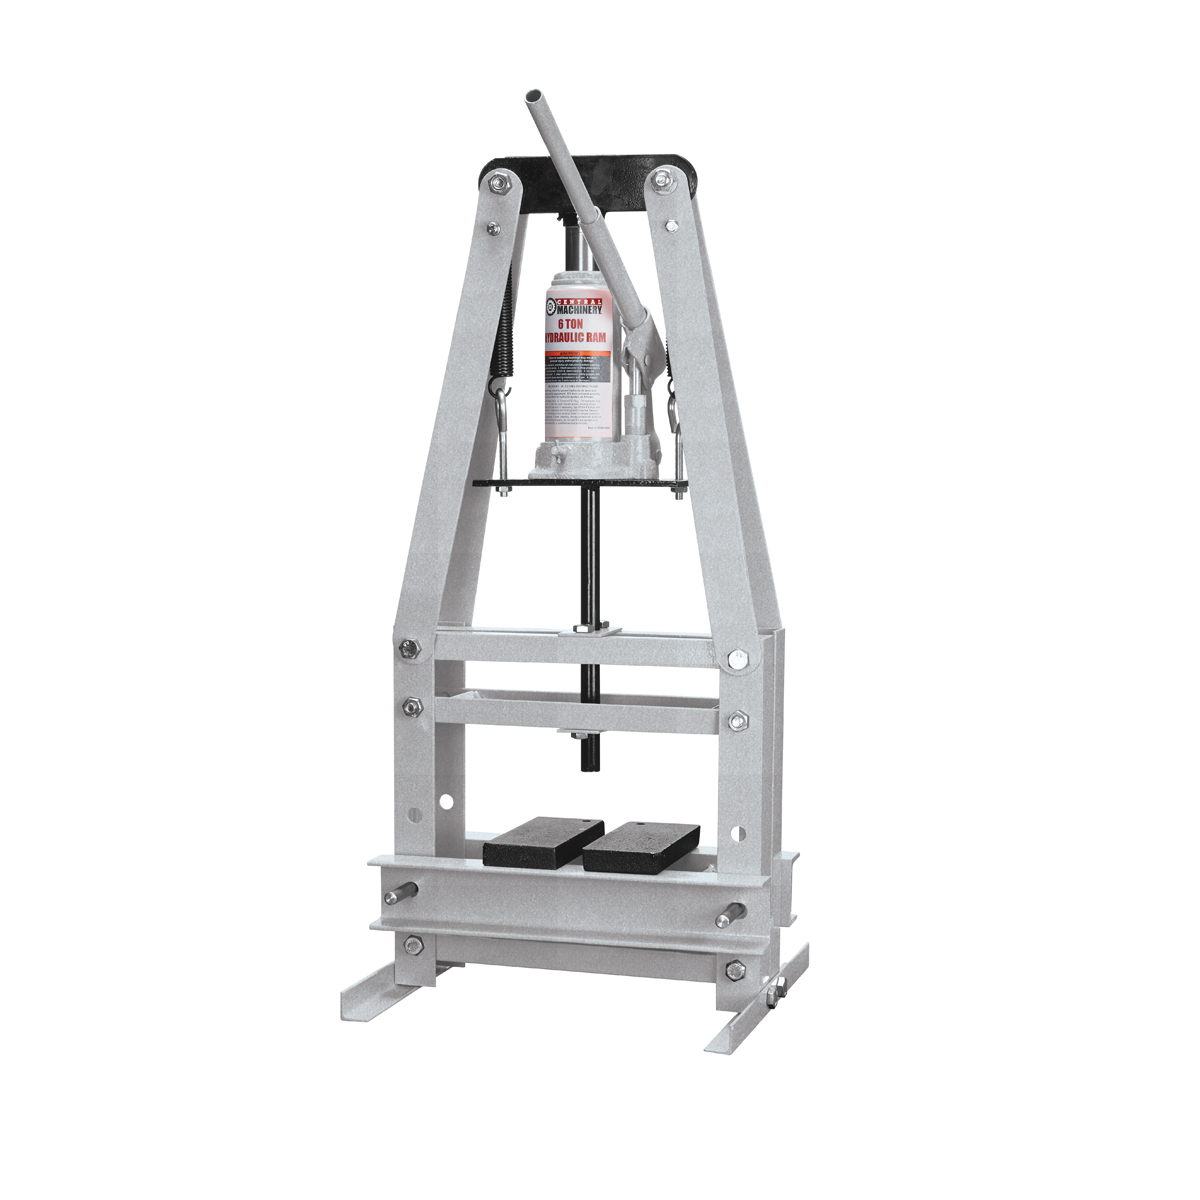 6 Ton A-Frame Bench Shop Press